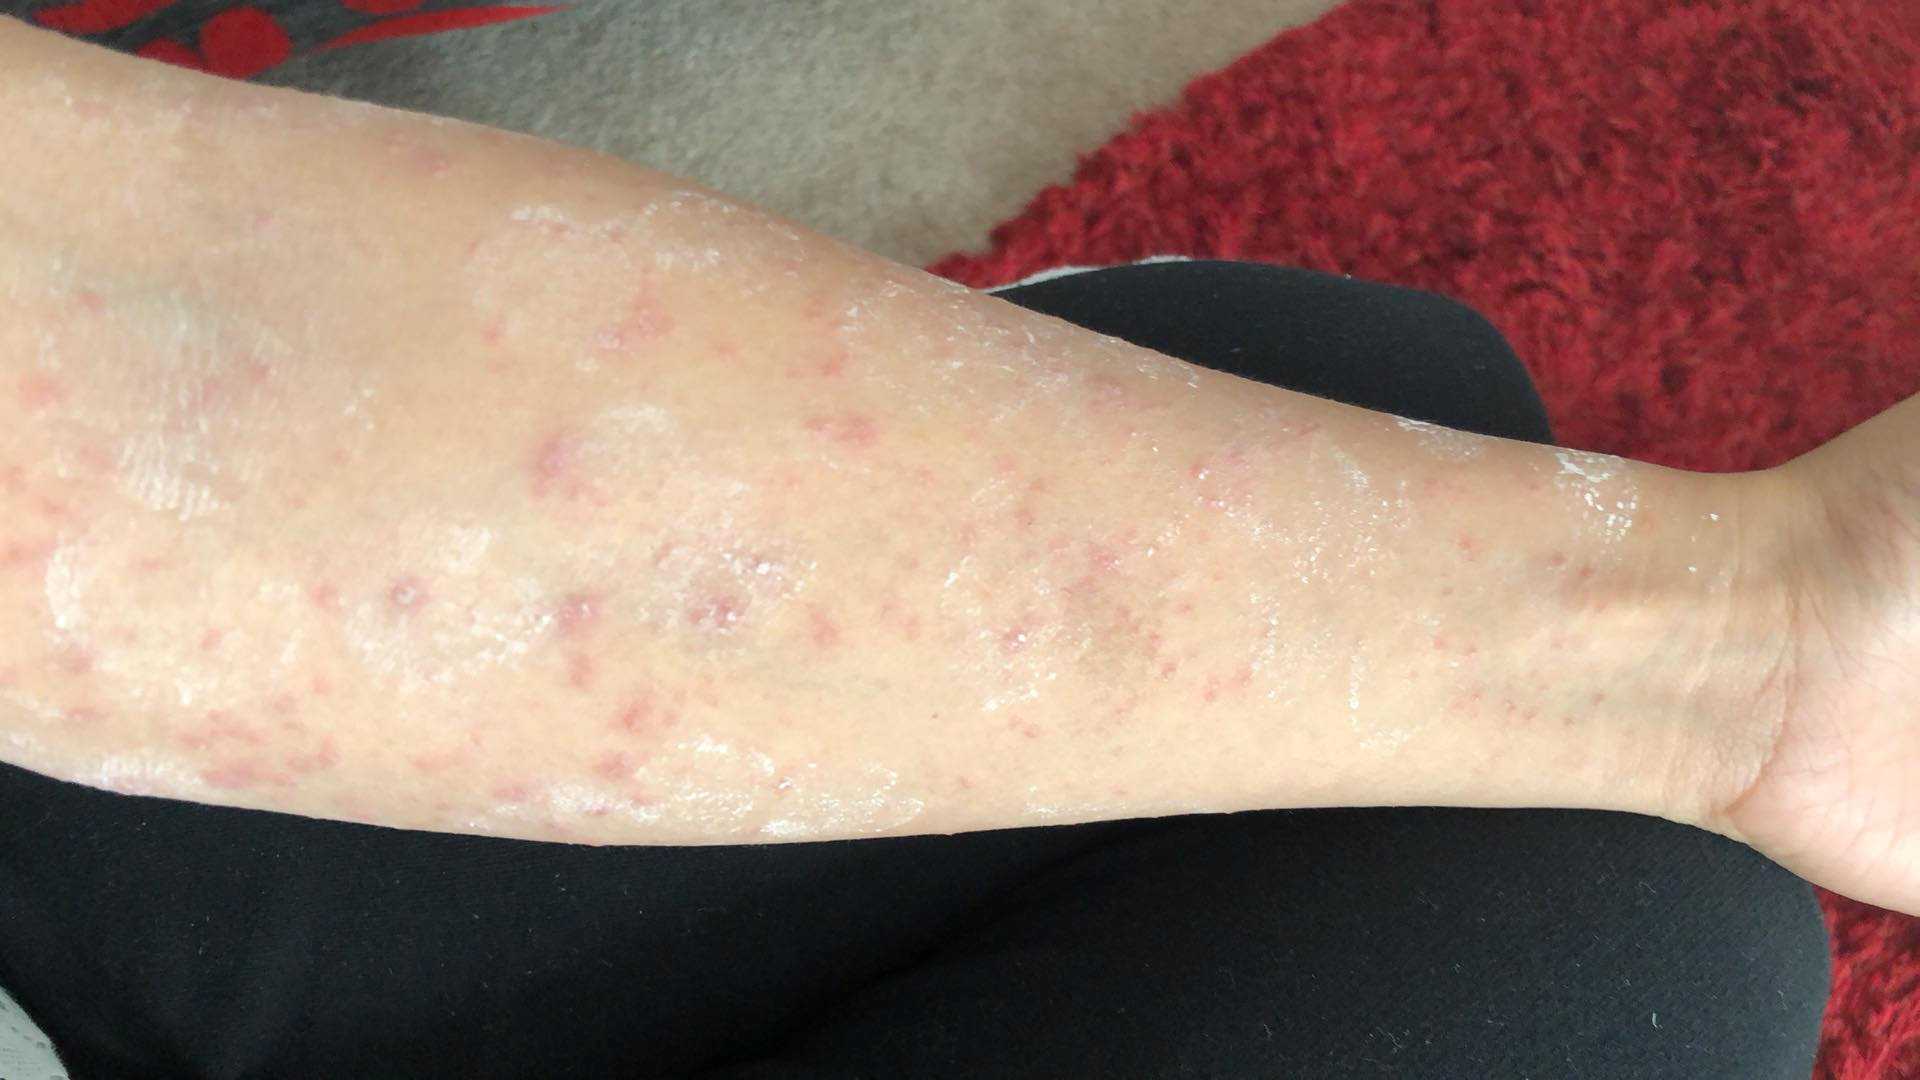 A rash caused by the caterpillars. Credit: SWNS